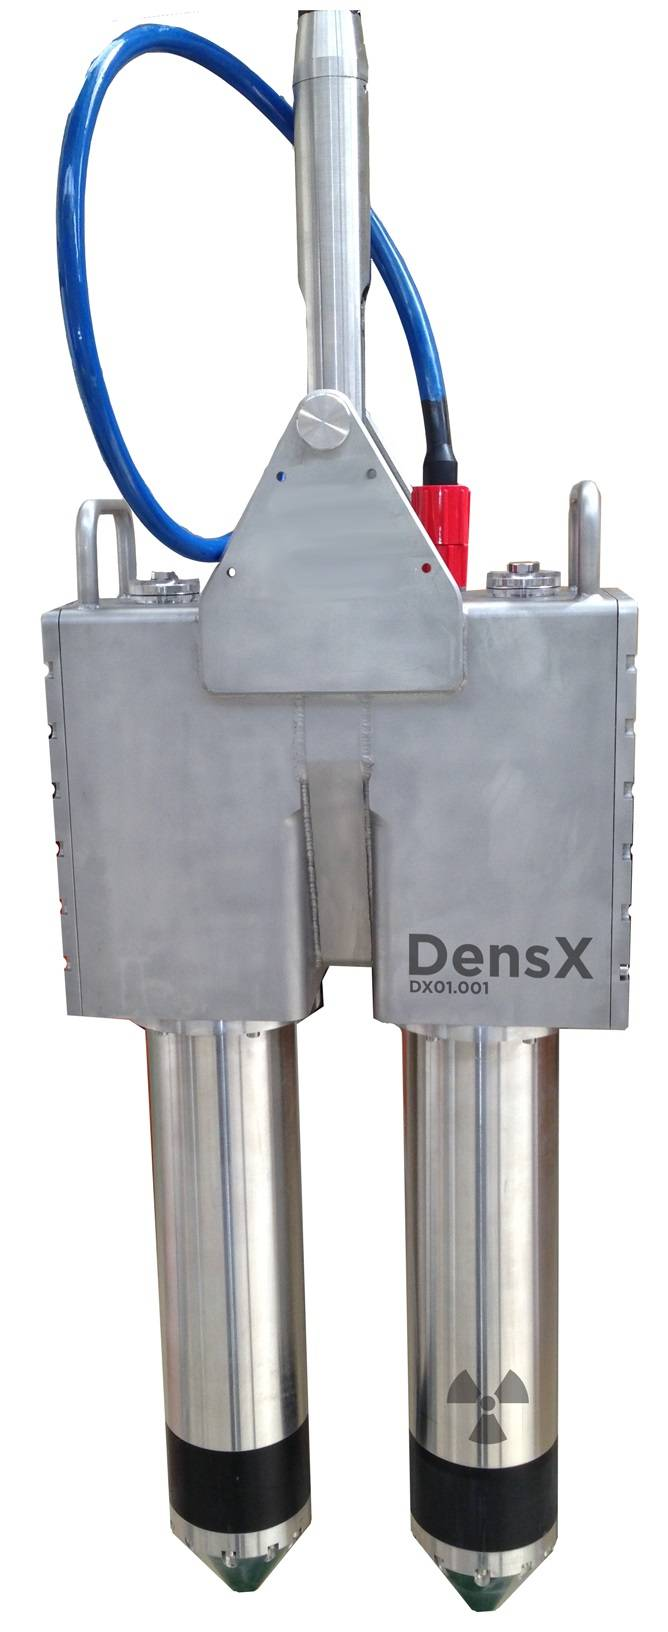 mud density 290 series density transmitter for mud and slurry from psm.